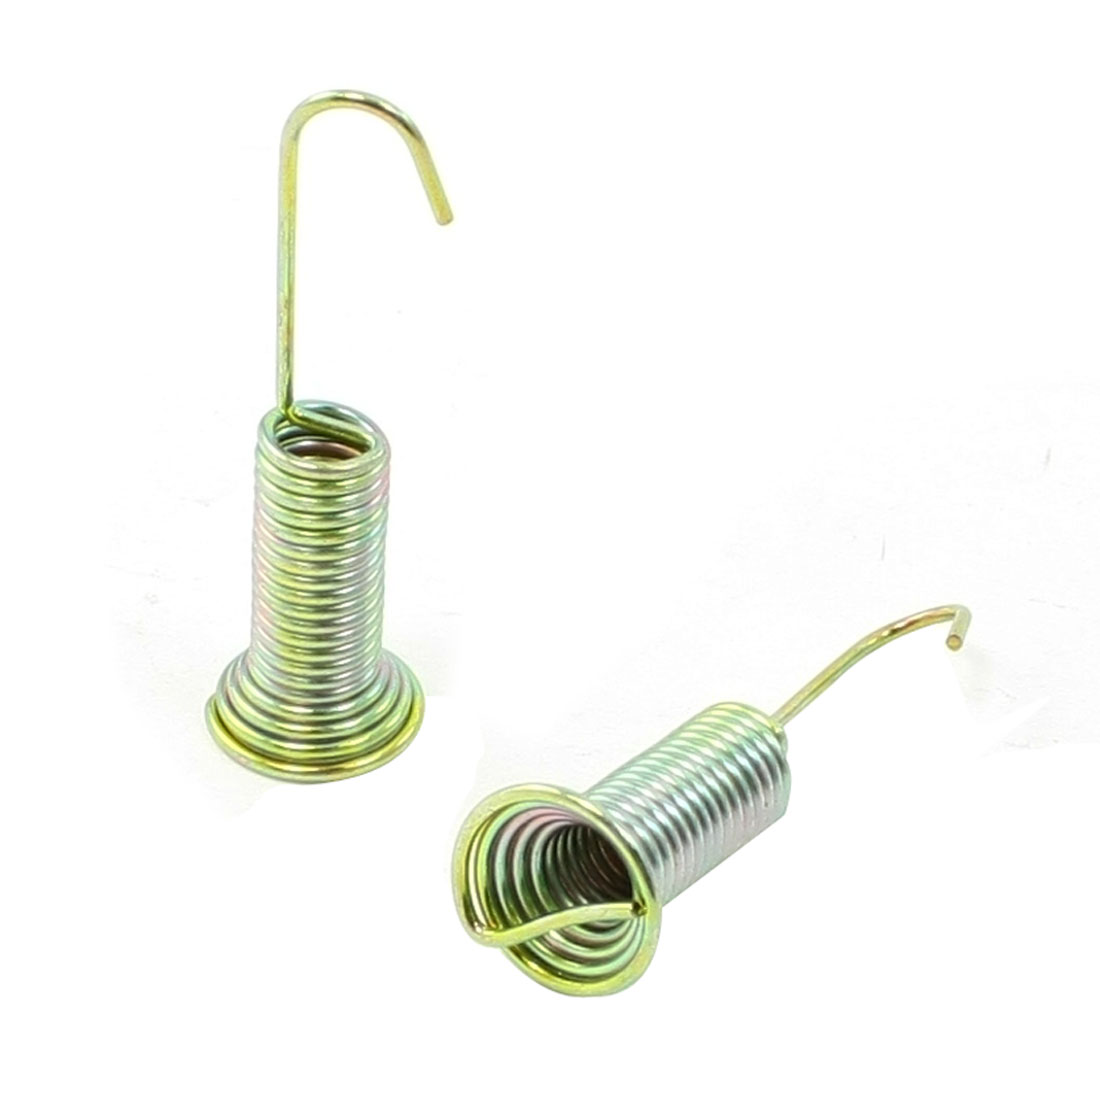 "2 x Washing Machine Water Drain Tap Tension Spring 2"" Long 0.6"" Dia"